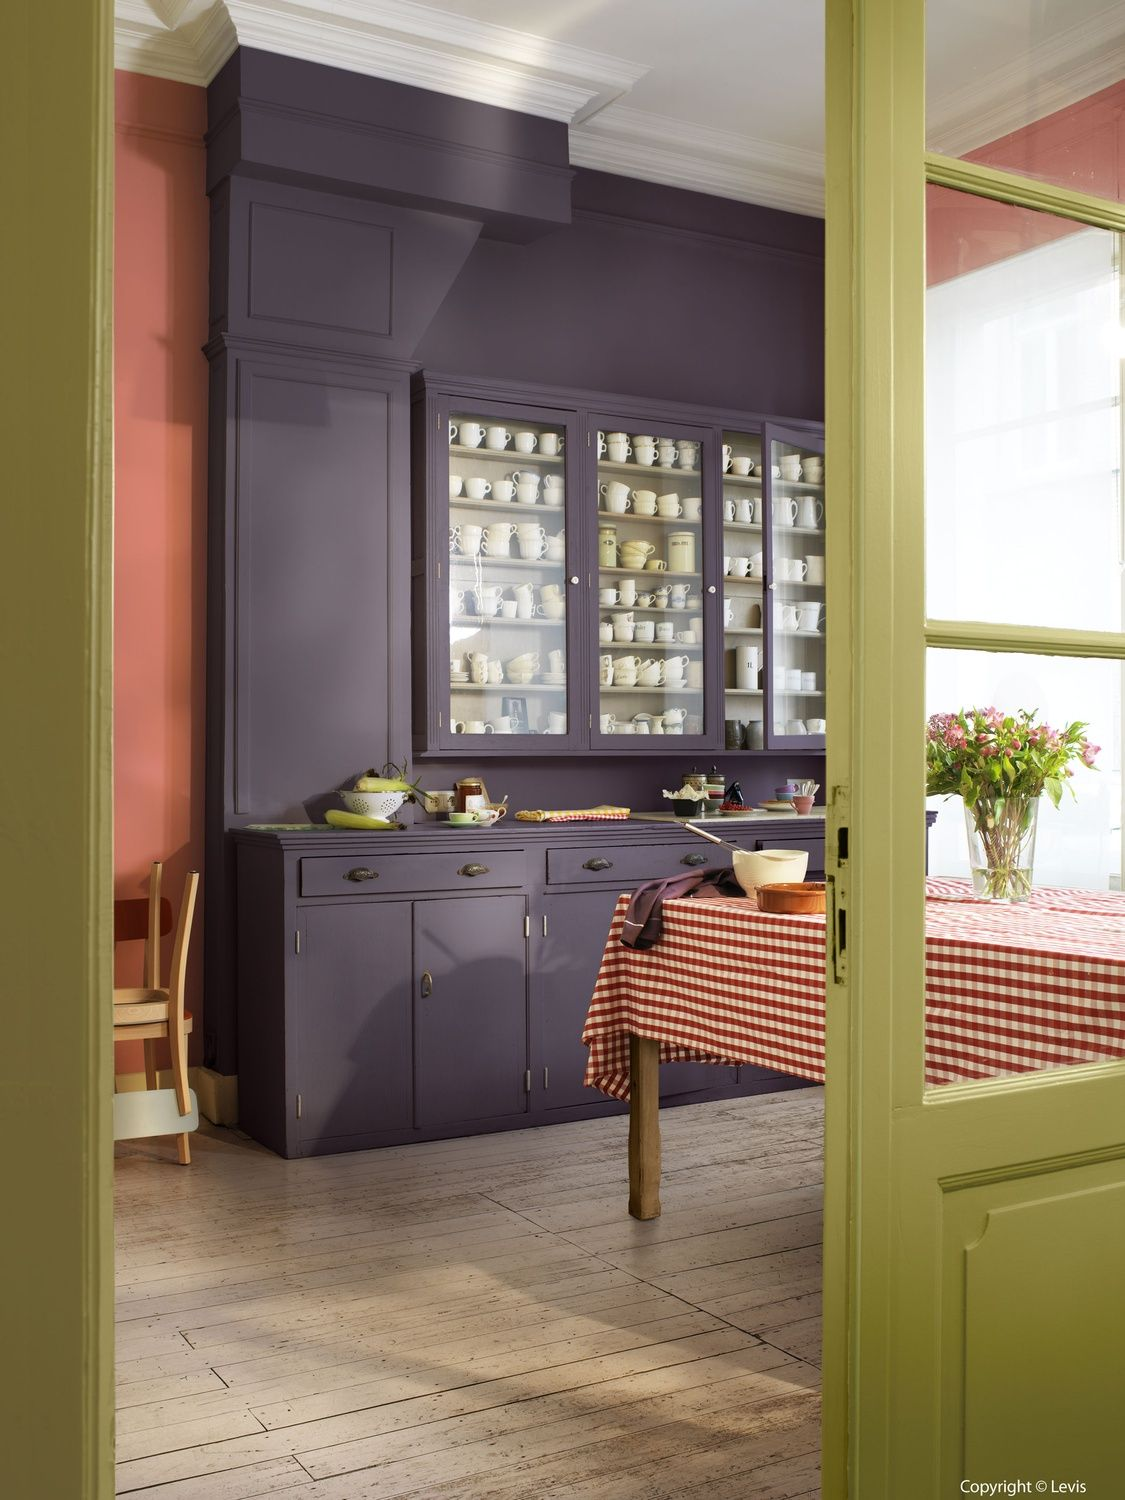 Aubergine cabinets with hits of red saltillo tile floor and with hits of red saltillo tile floor and dailygadgetfo Image collections